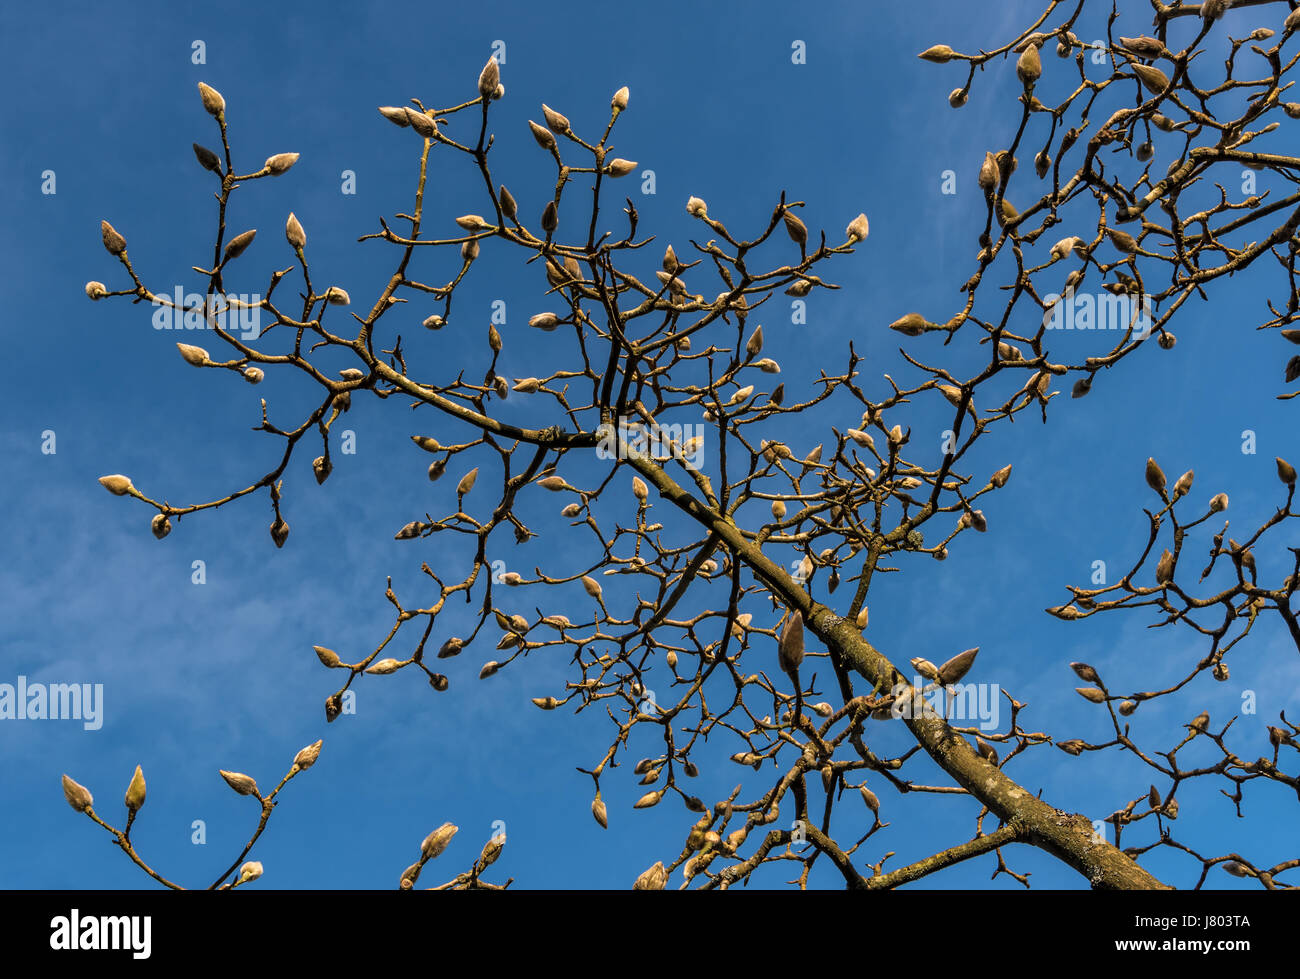 Buds on a Magnolia tree against a blue sky Stock Photo